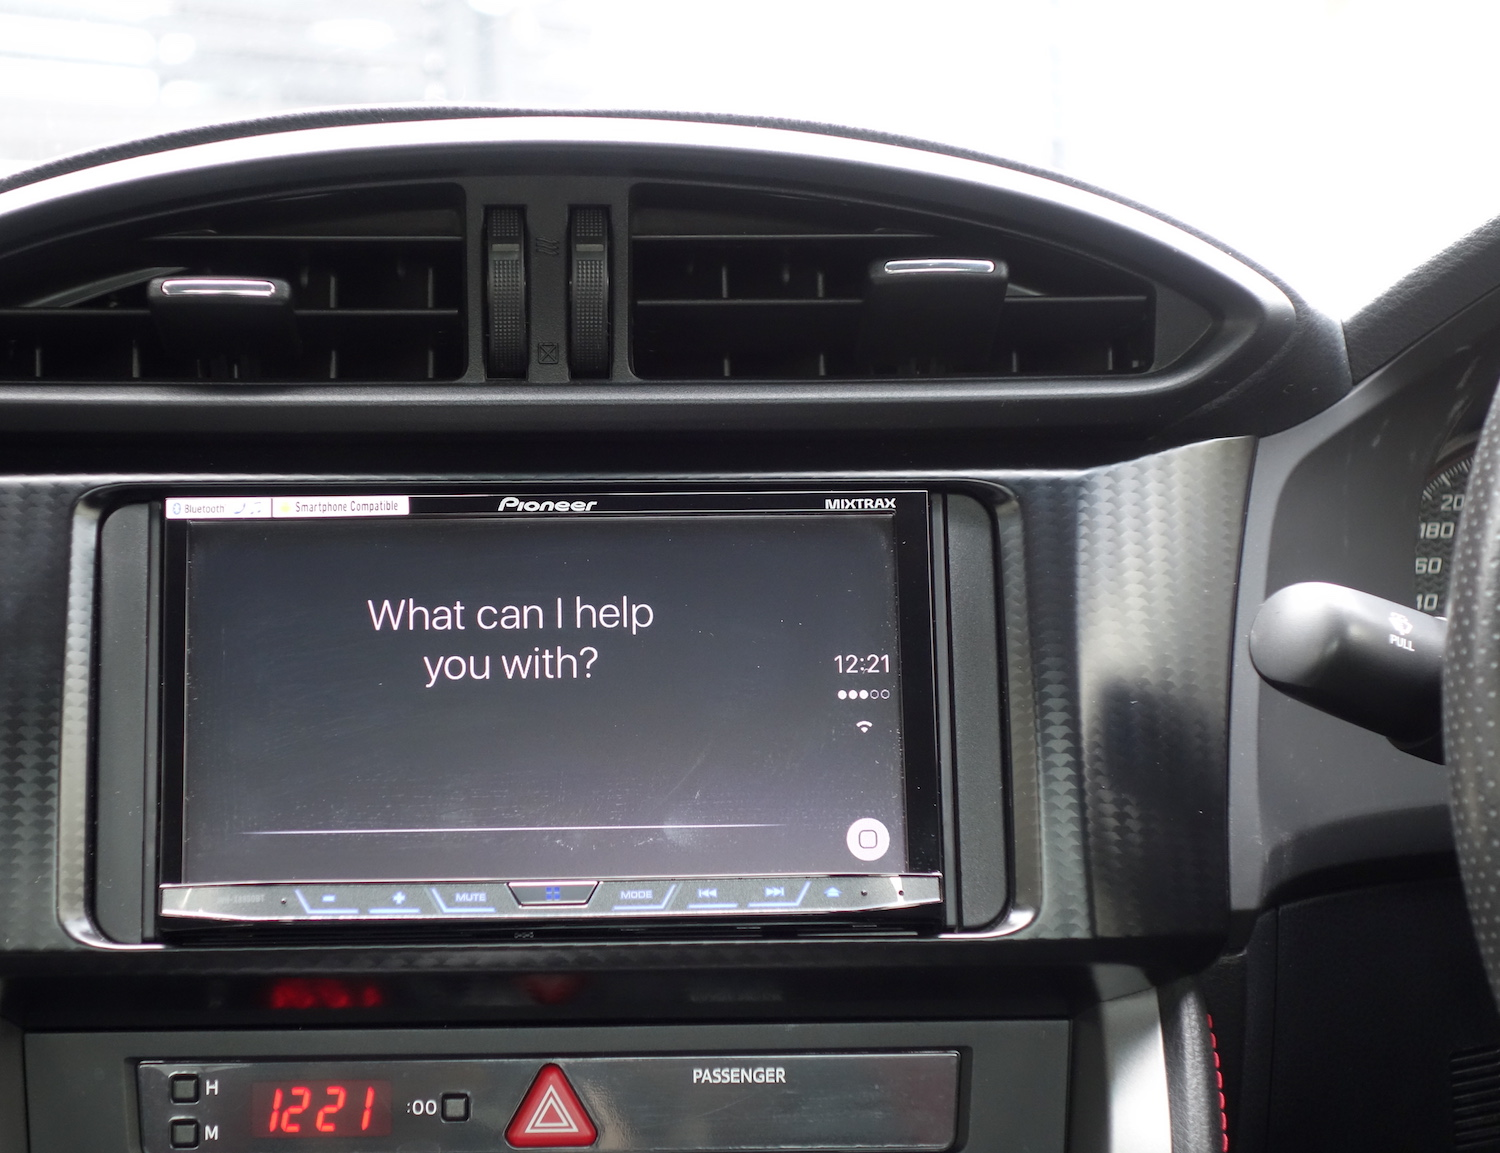 Siri on Pioneer X8850BT CarPlay